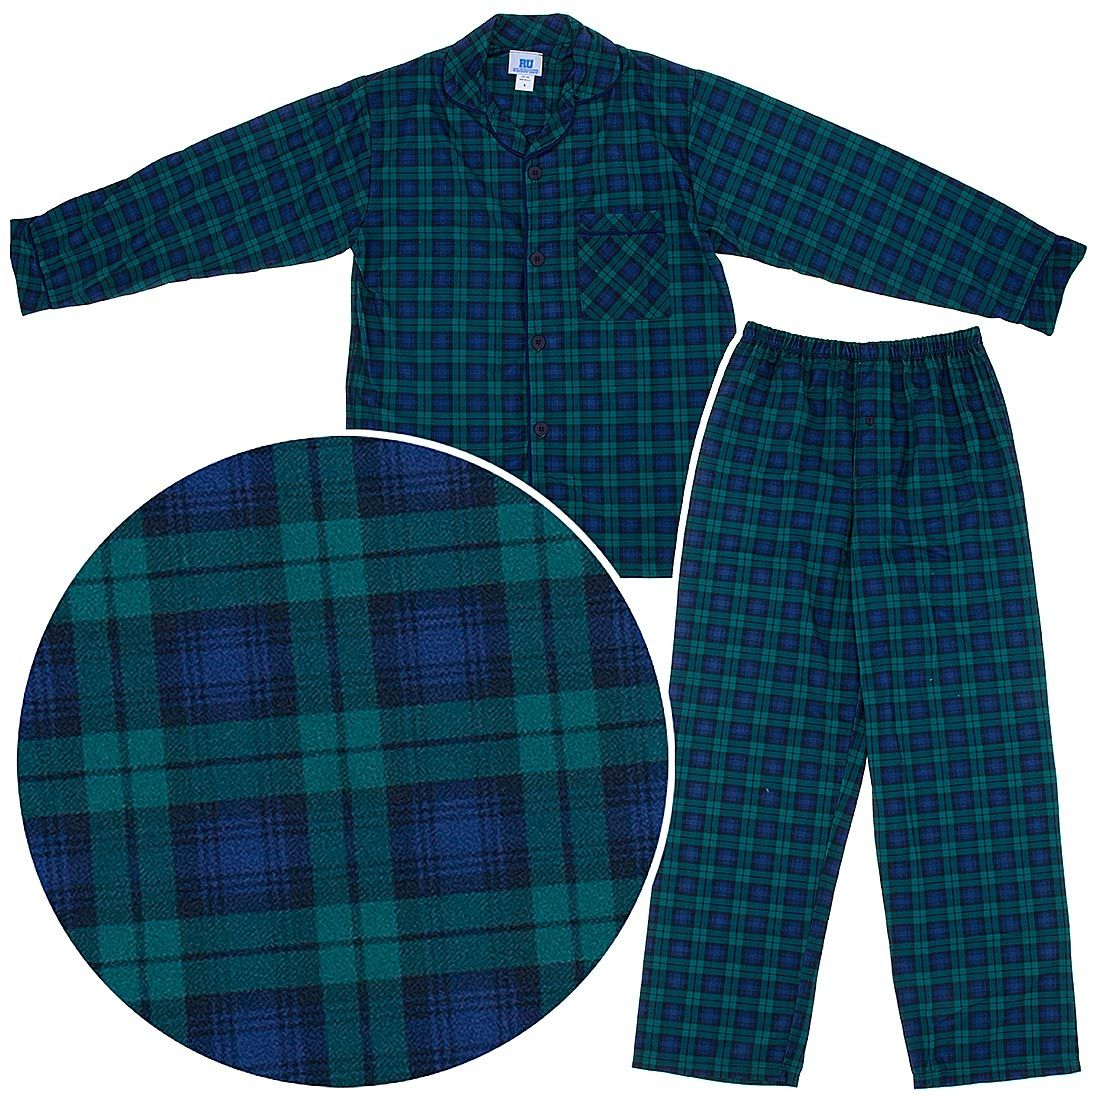 Blackwatch Classic Christmas Coat-Style Pajamas for Infants ... bc2da63f1